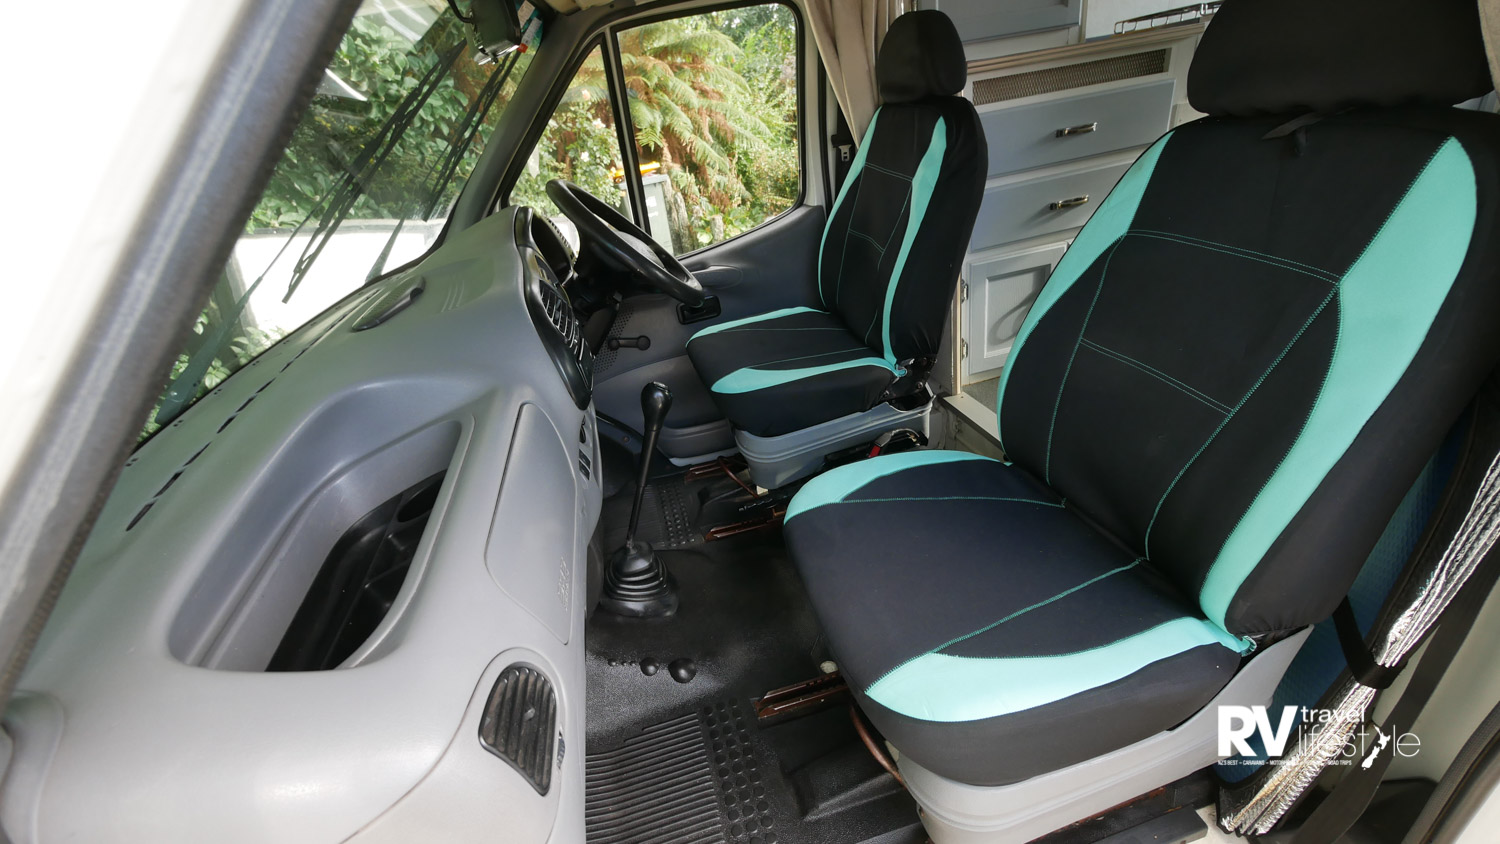 No new seats for Rosie - Yet - but these seat covers from Supercheap Auto certainly snazzed her up to match the back area